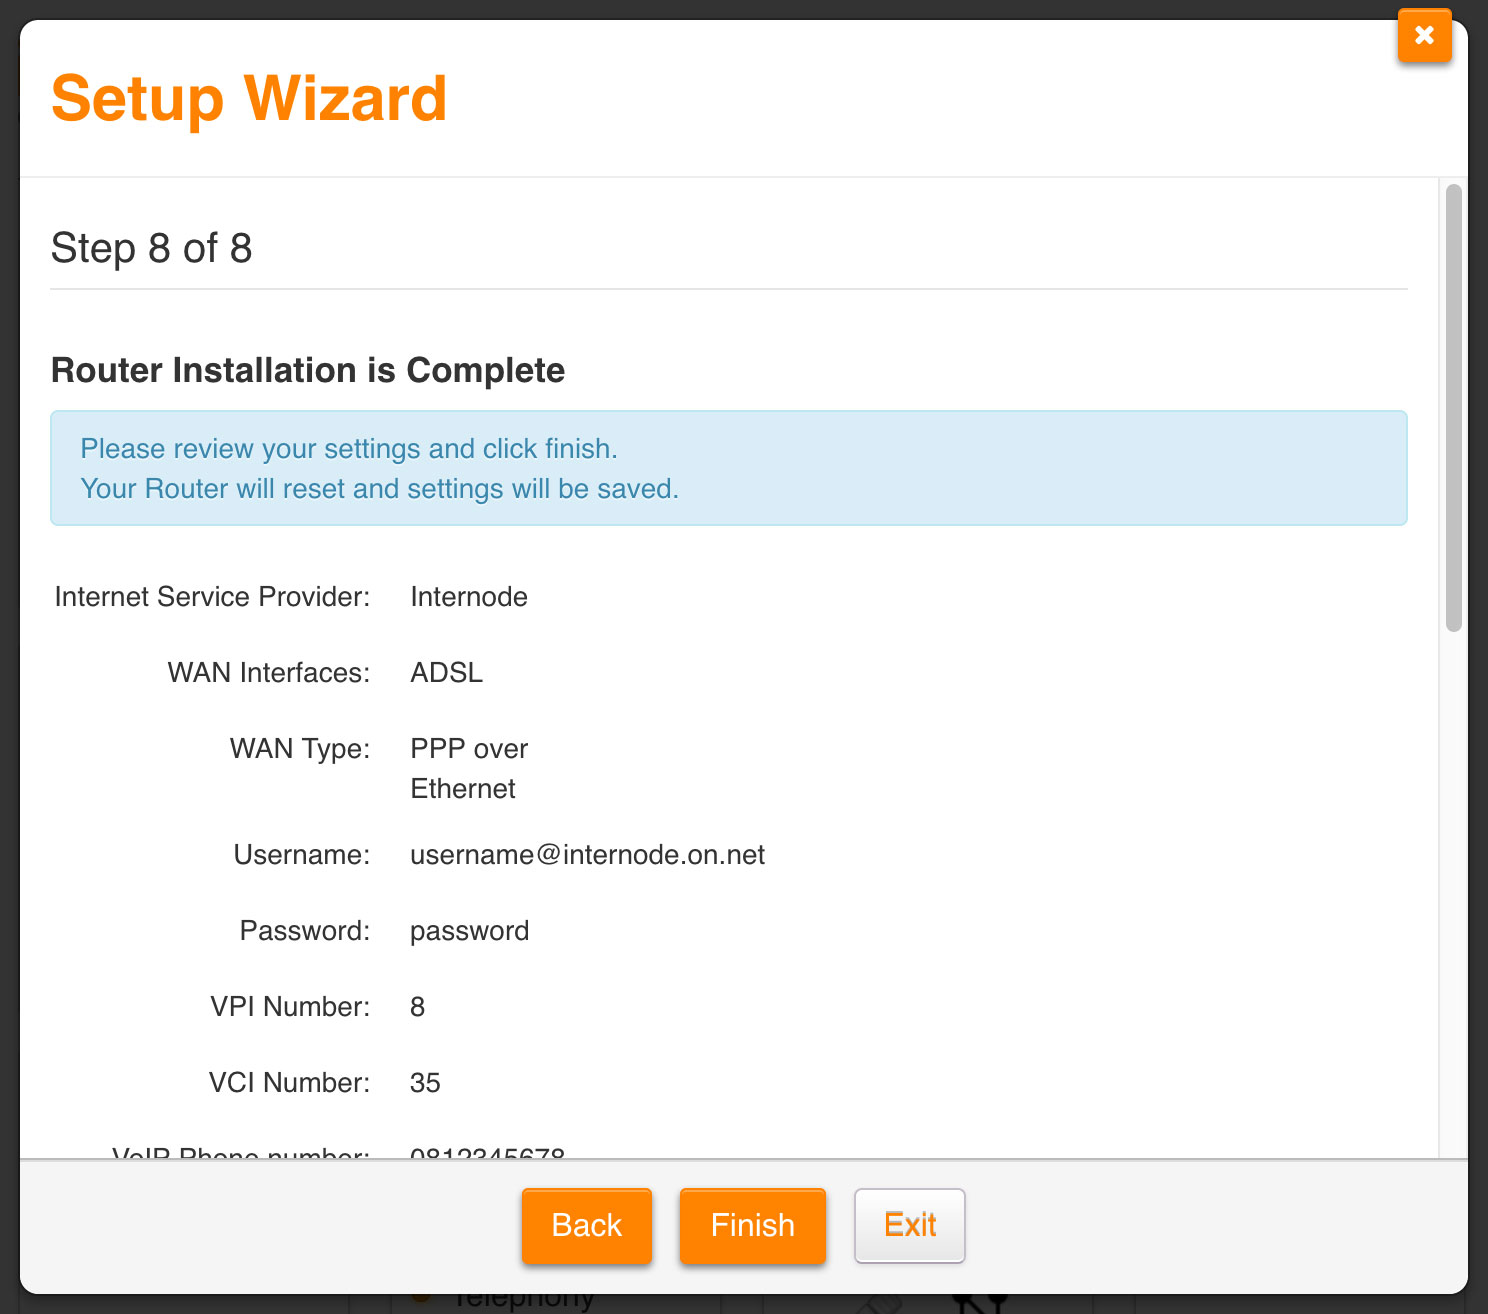 Screenshot: Reviewing settings and finishing the wizard